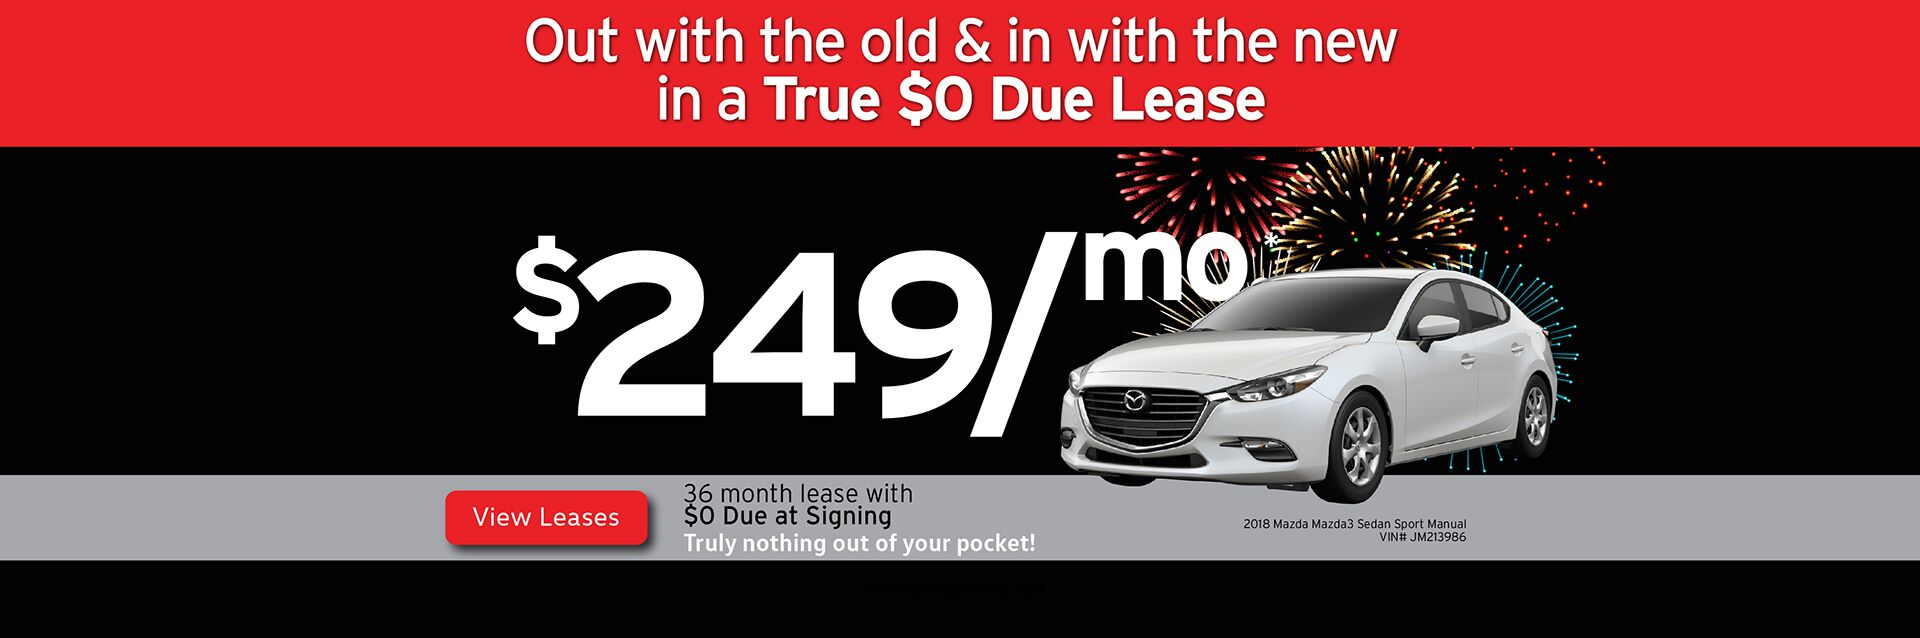 Capistrano Mazda New Year Lease Offers - Out with the old and in with the new!